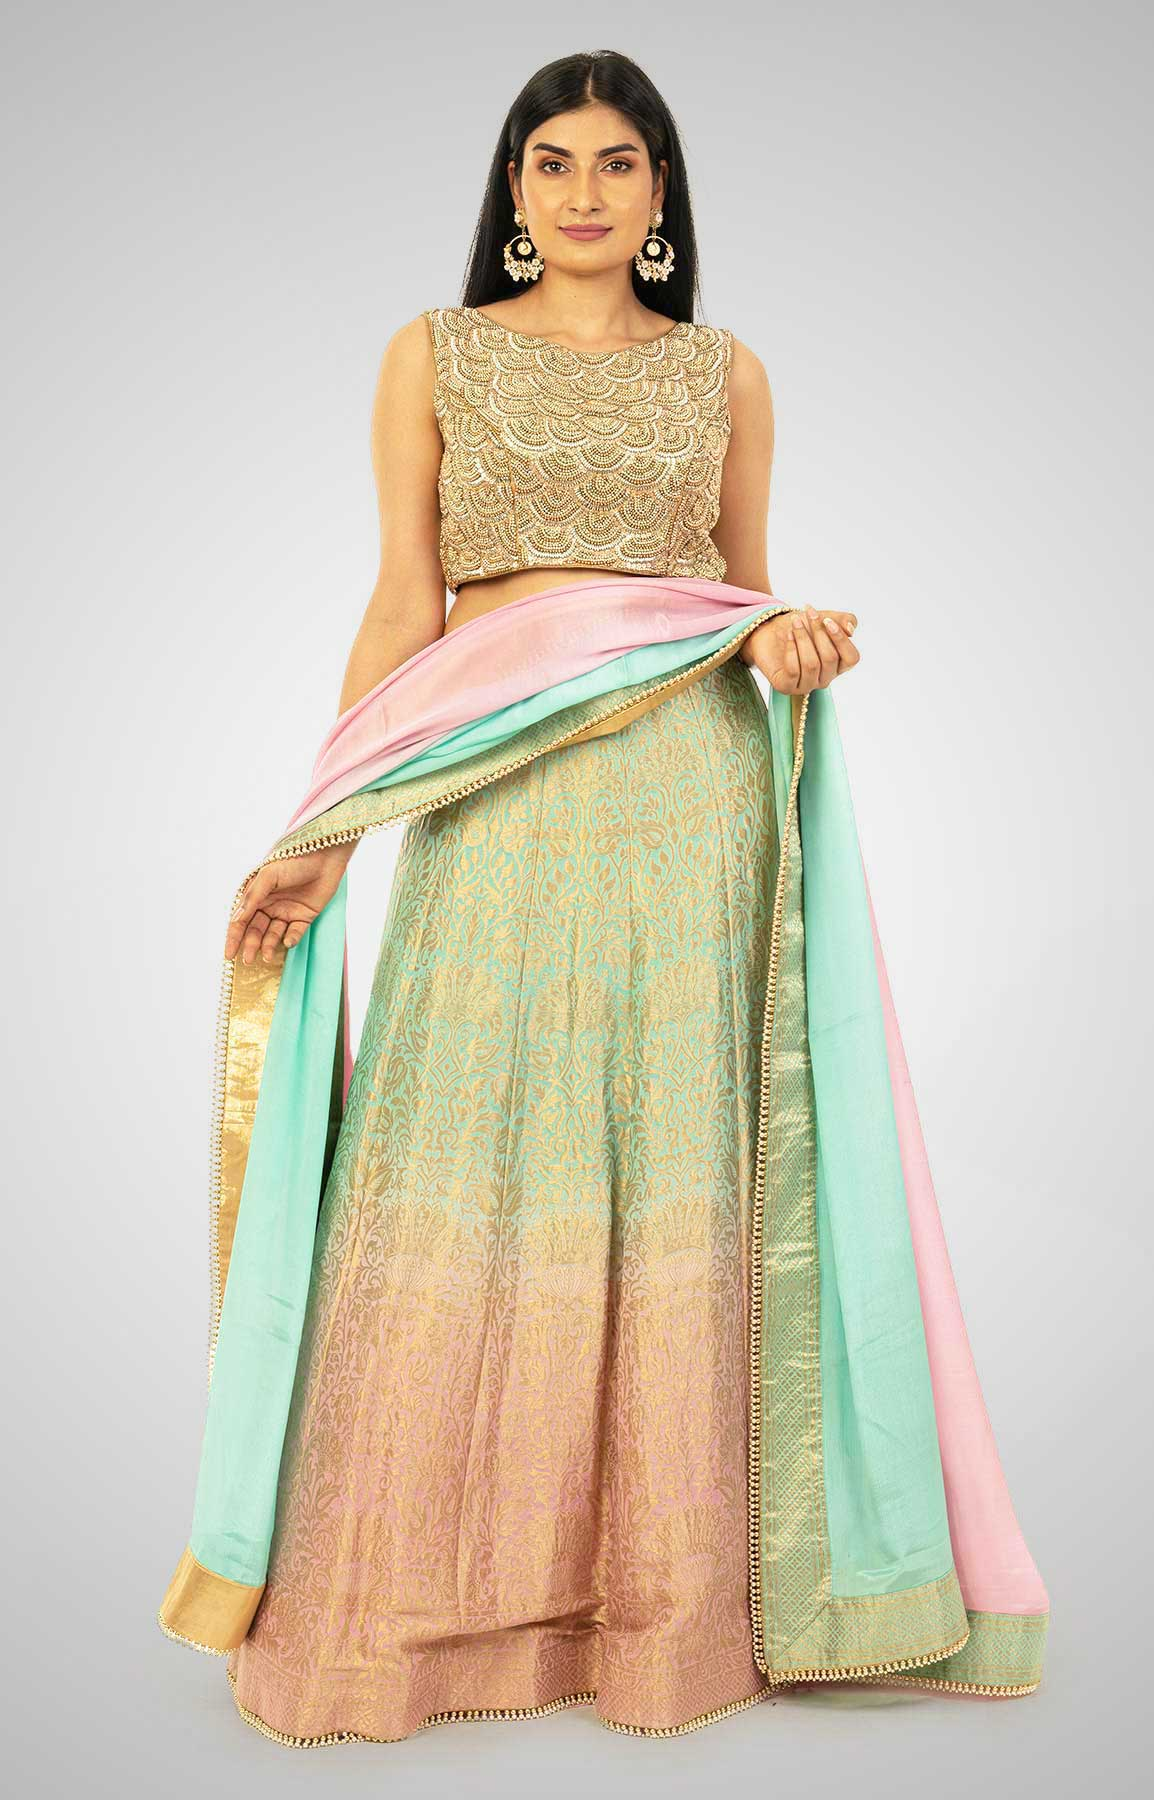 Powder Pink And Aqua Green Banarasi Lehenga Choli With Hand Embroidered Blouse – Viraaya By Ushnakmals